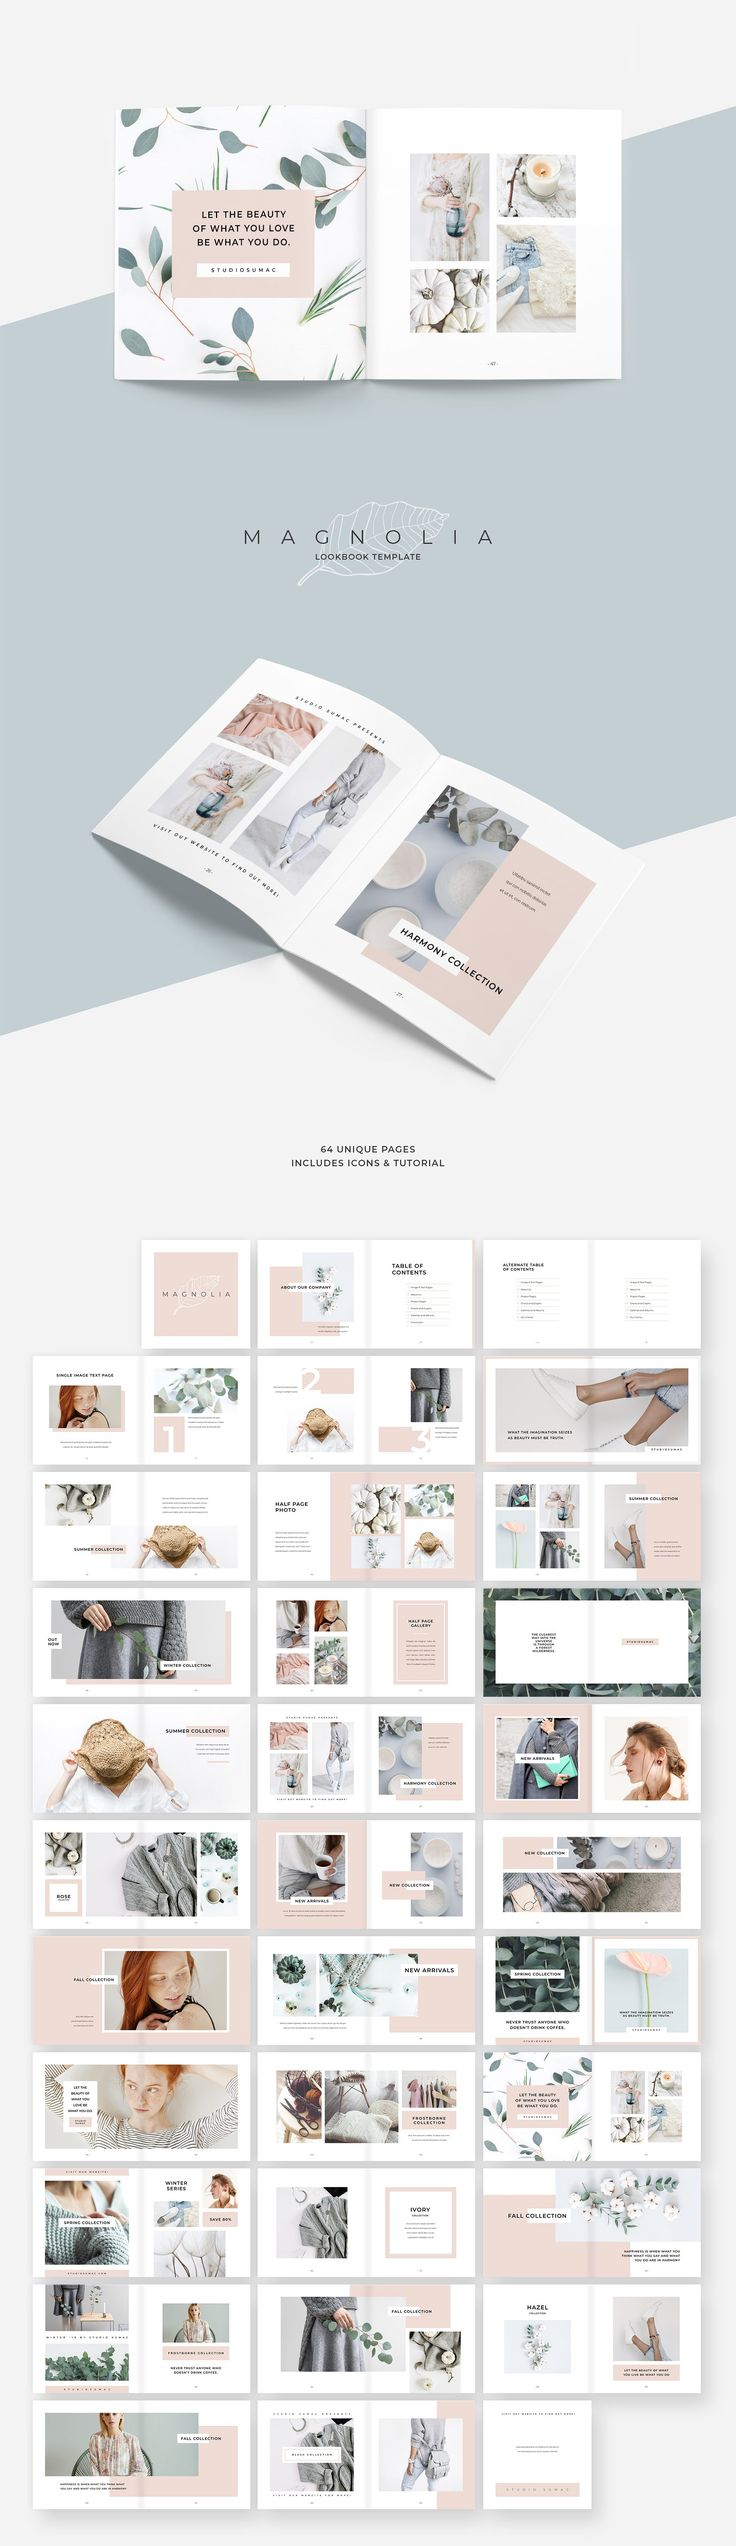 Magnolia Lookbook Template lookbook, magazine, chic, elegant, female, boss, business, catalog, portfolio, photo, guide, branding, brand, feminine, company, clothing, print, minimal, upscale, presentation, proposal, showcase, professional, magnolia, catalogue brochure, brochure templates, pamphlet, postcard, brochure examples, pamphlet template